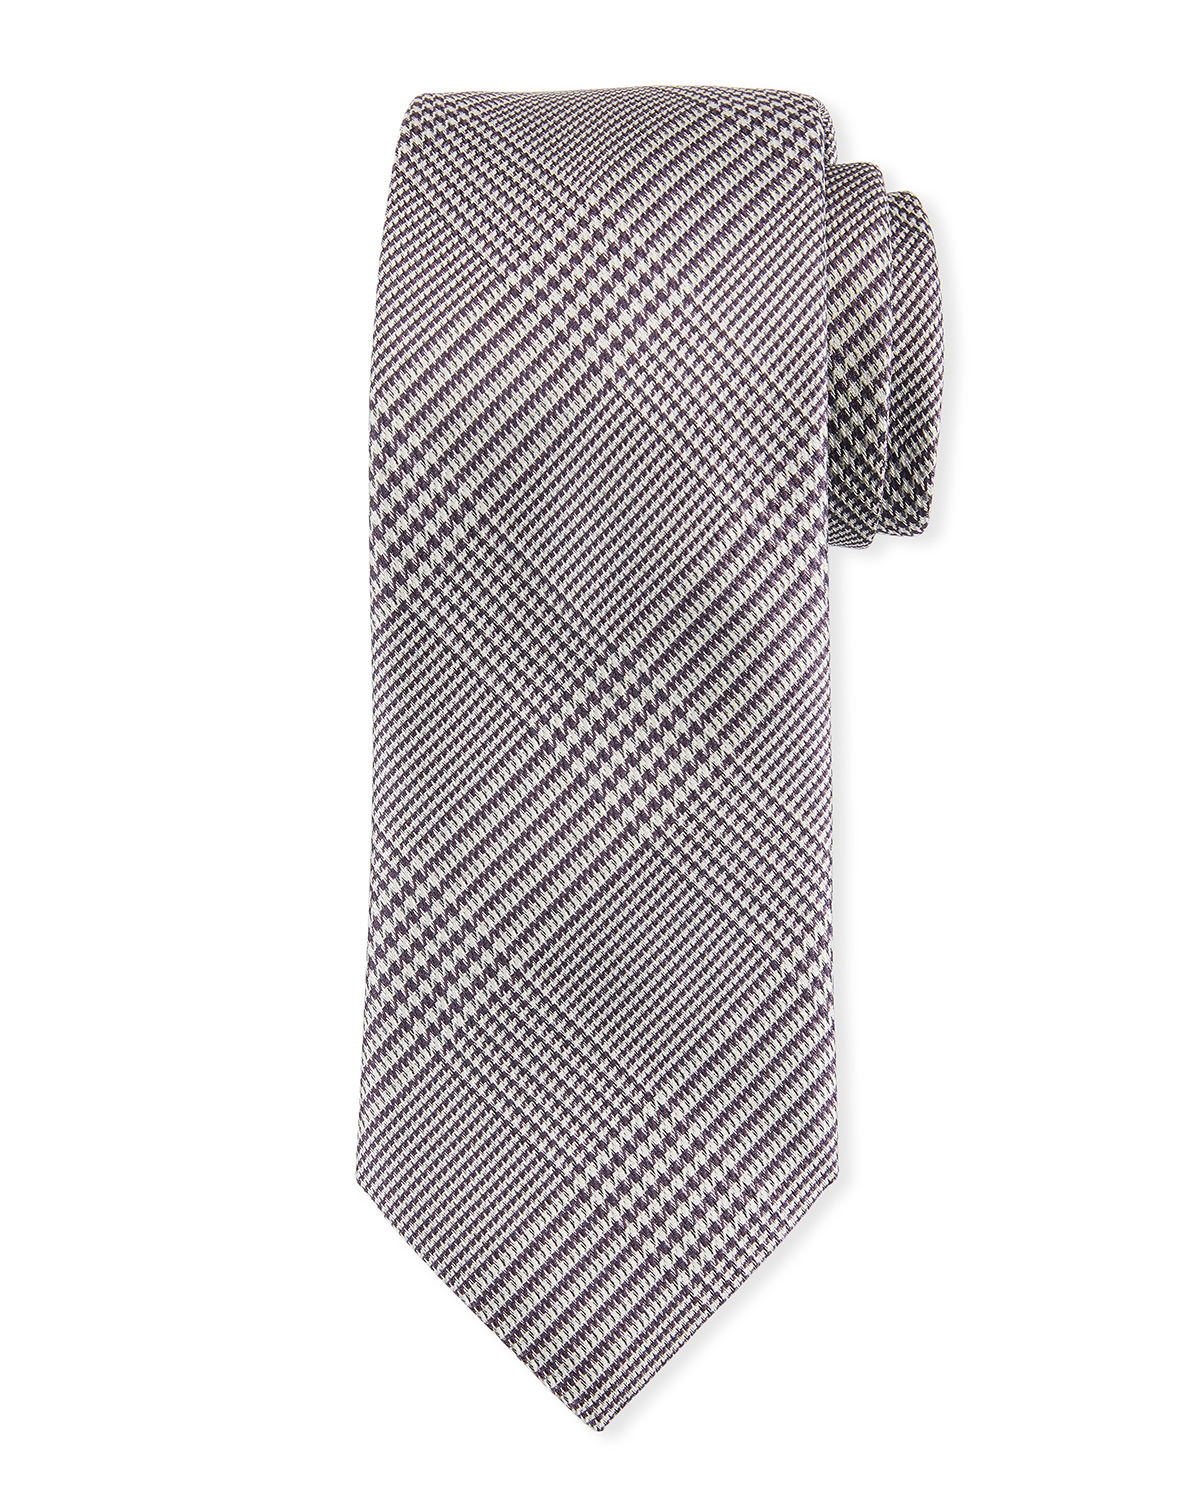 Brioni Ties HOUNDSTOOTH PLAID SILK TIE